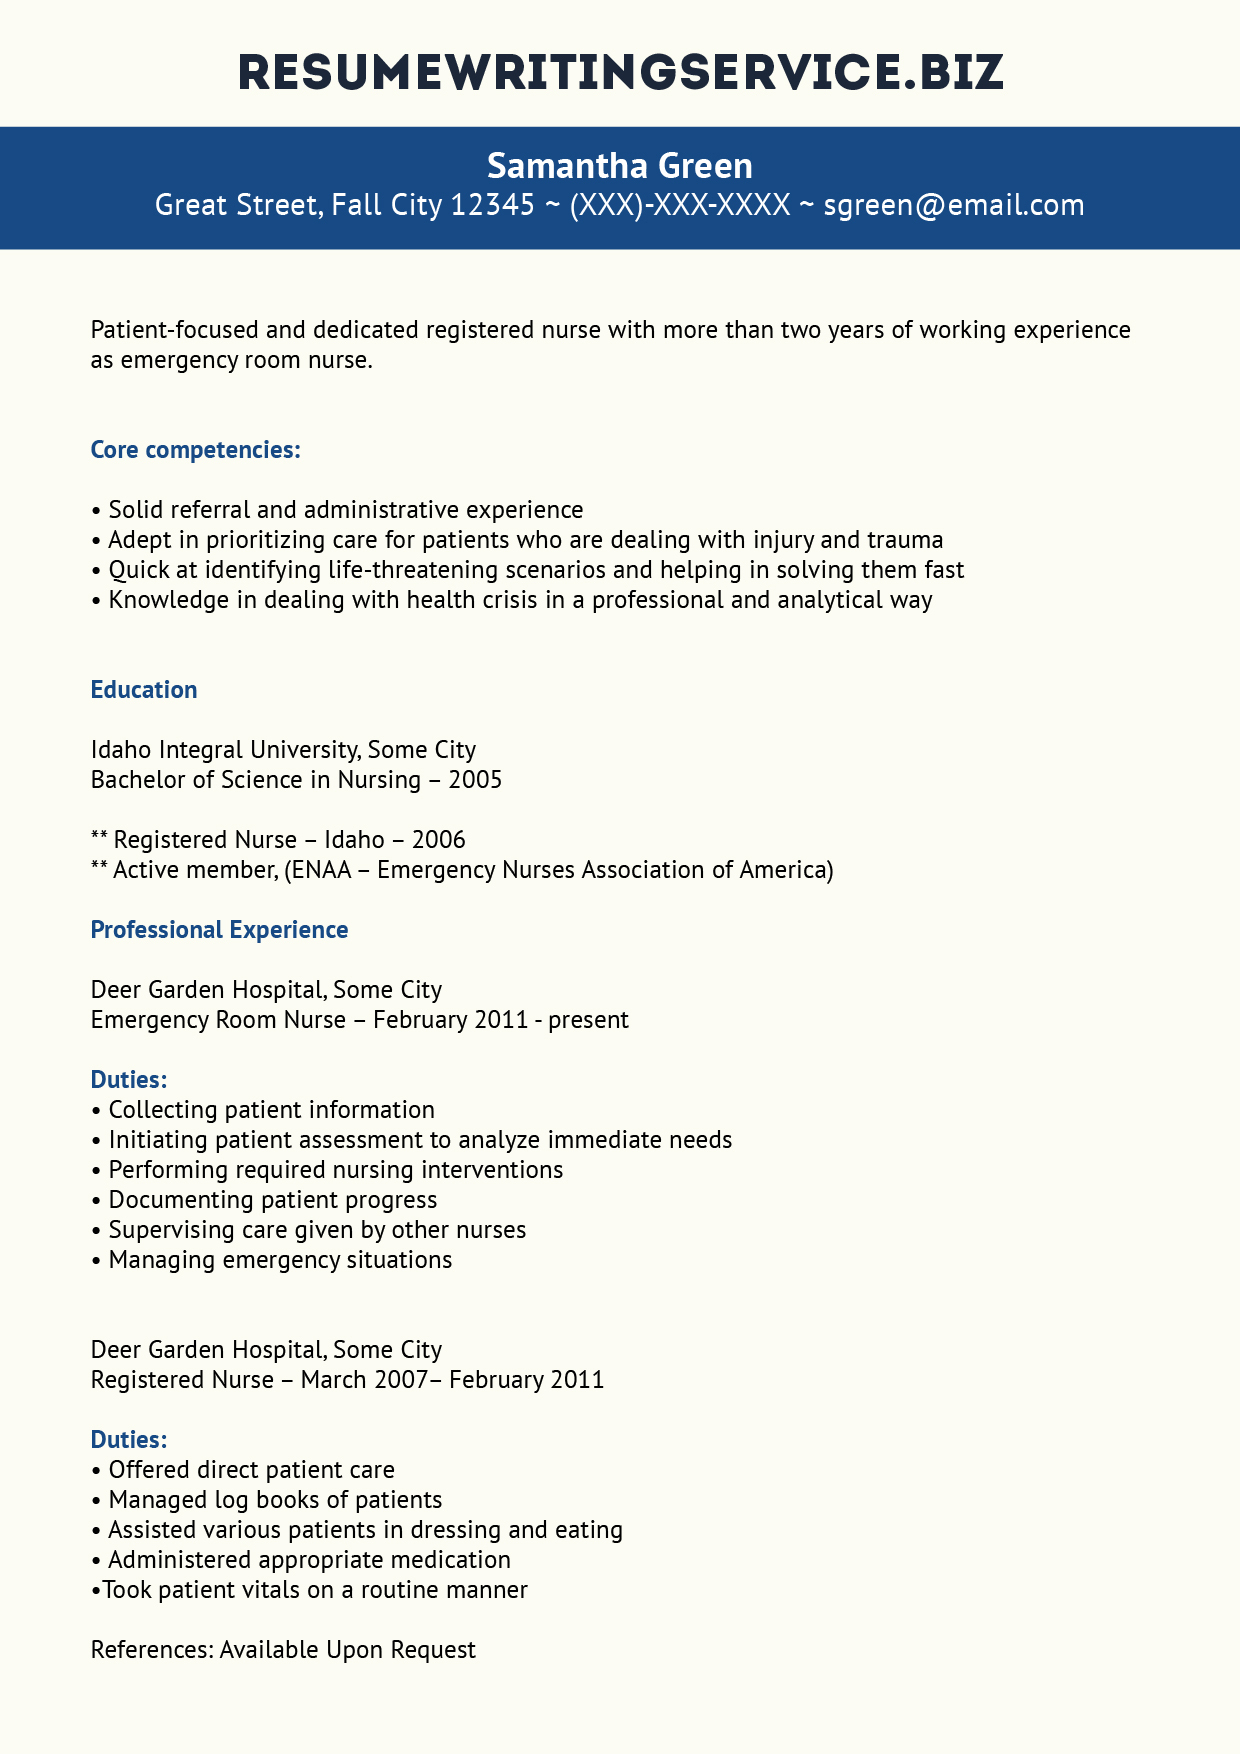 Emergency Nursing Resume Examples Inspiring Photos Professional Er Nurse Resume Example